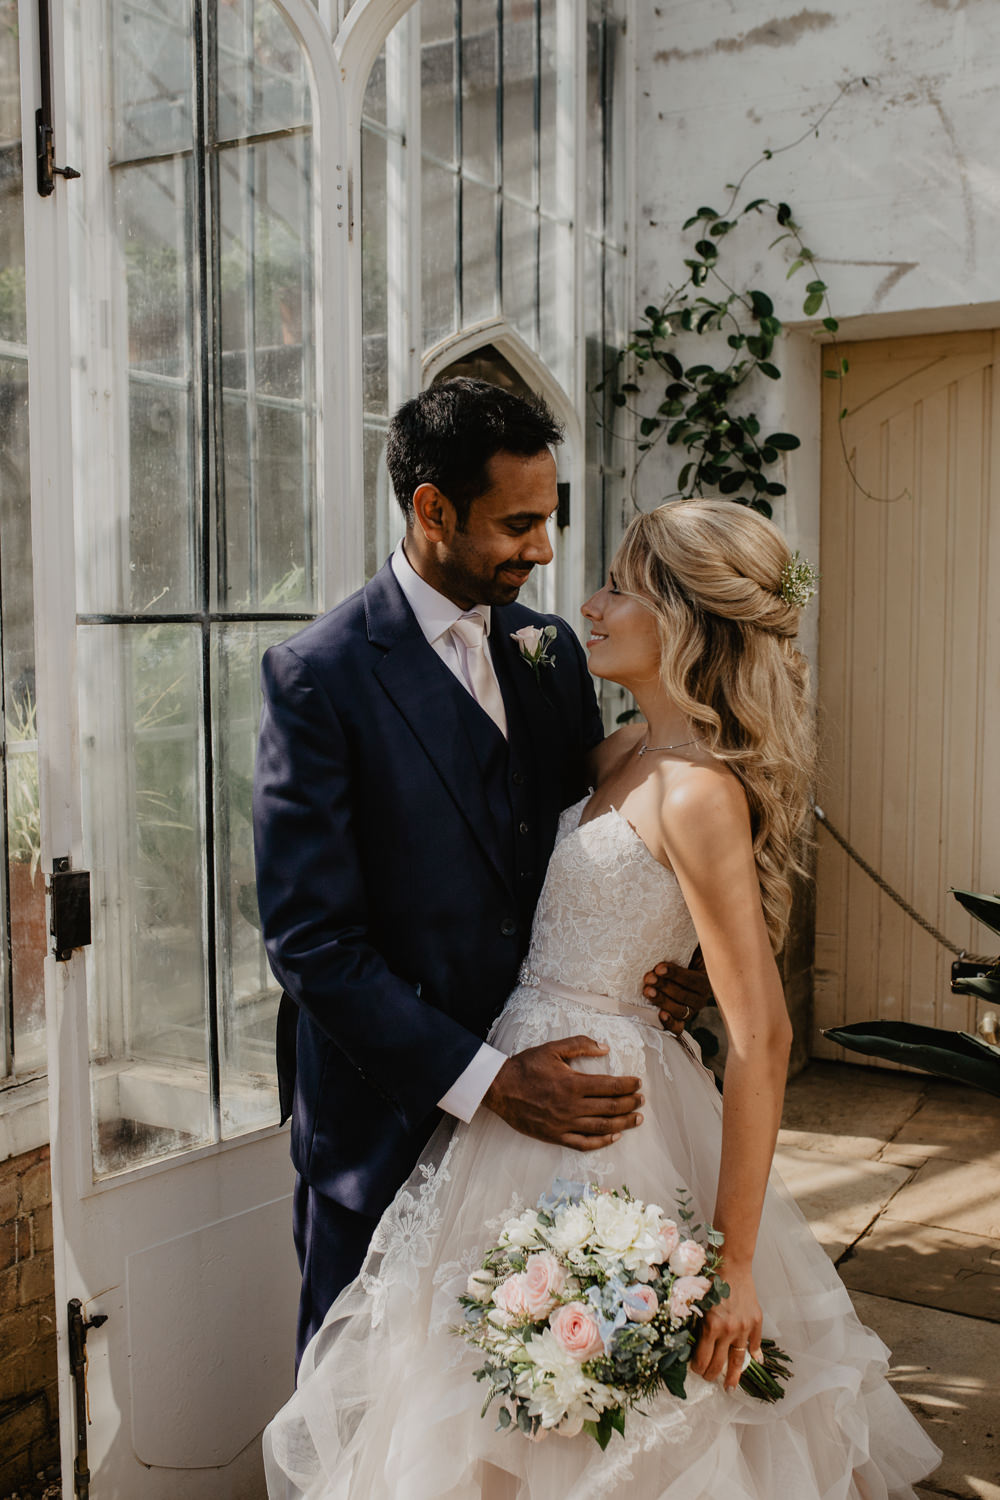 Osborne House Isle of Wight Natural Classic Blush Pastel Bridal Bouquet Bride Groom Romantic Portraits Rose Garden | Timeless Royal Inspired Seaside Wedding Holly Cade Photography